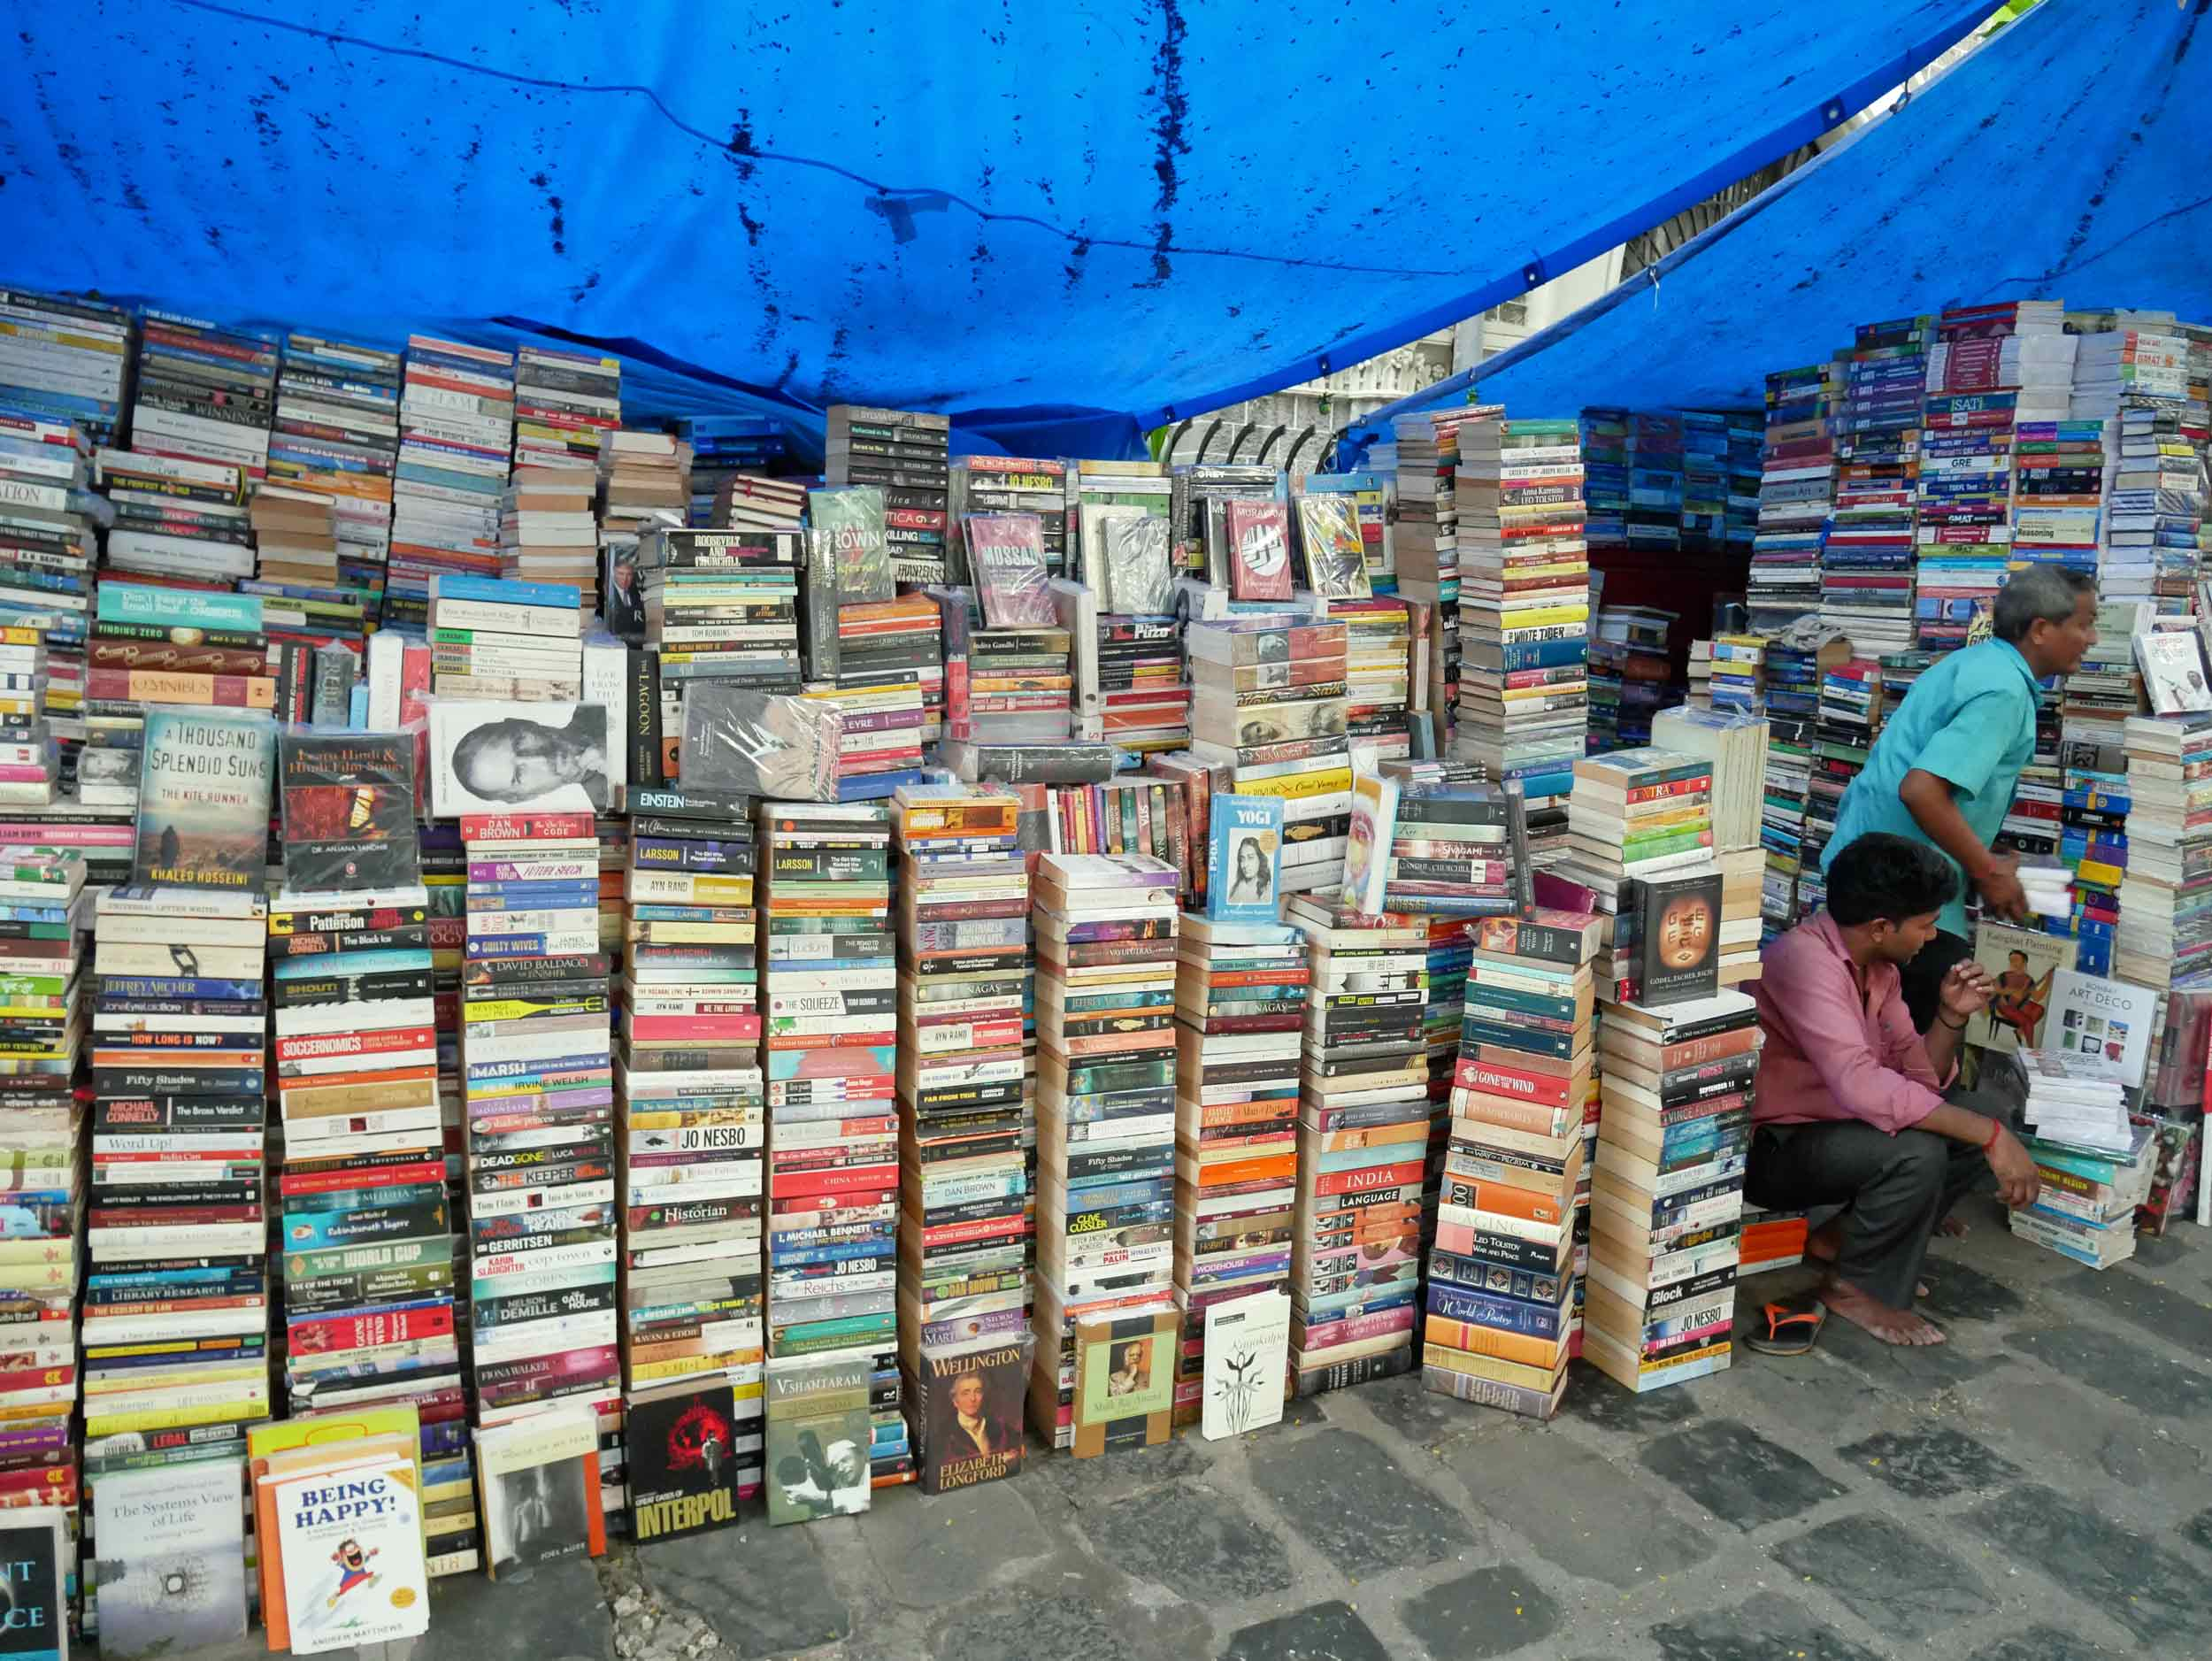 Vendor after vendor of books line the streets of this market in Colaba.